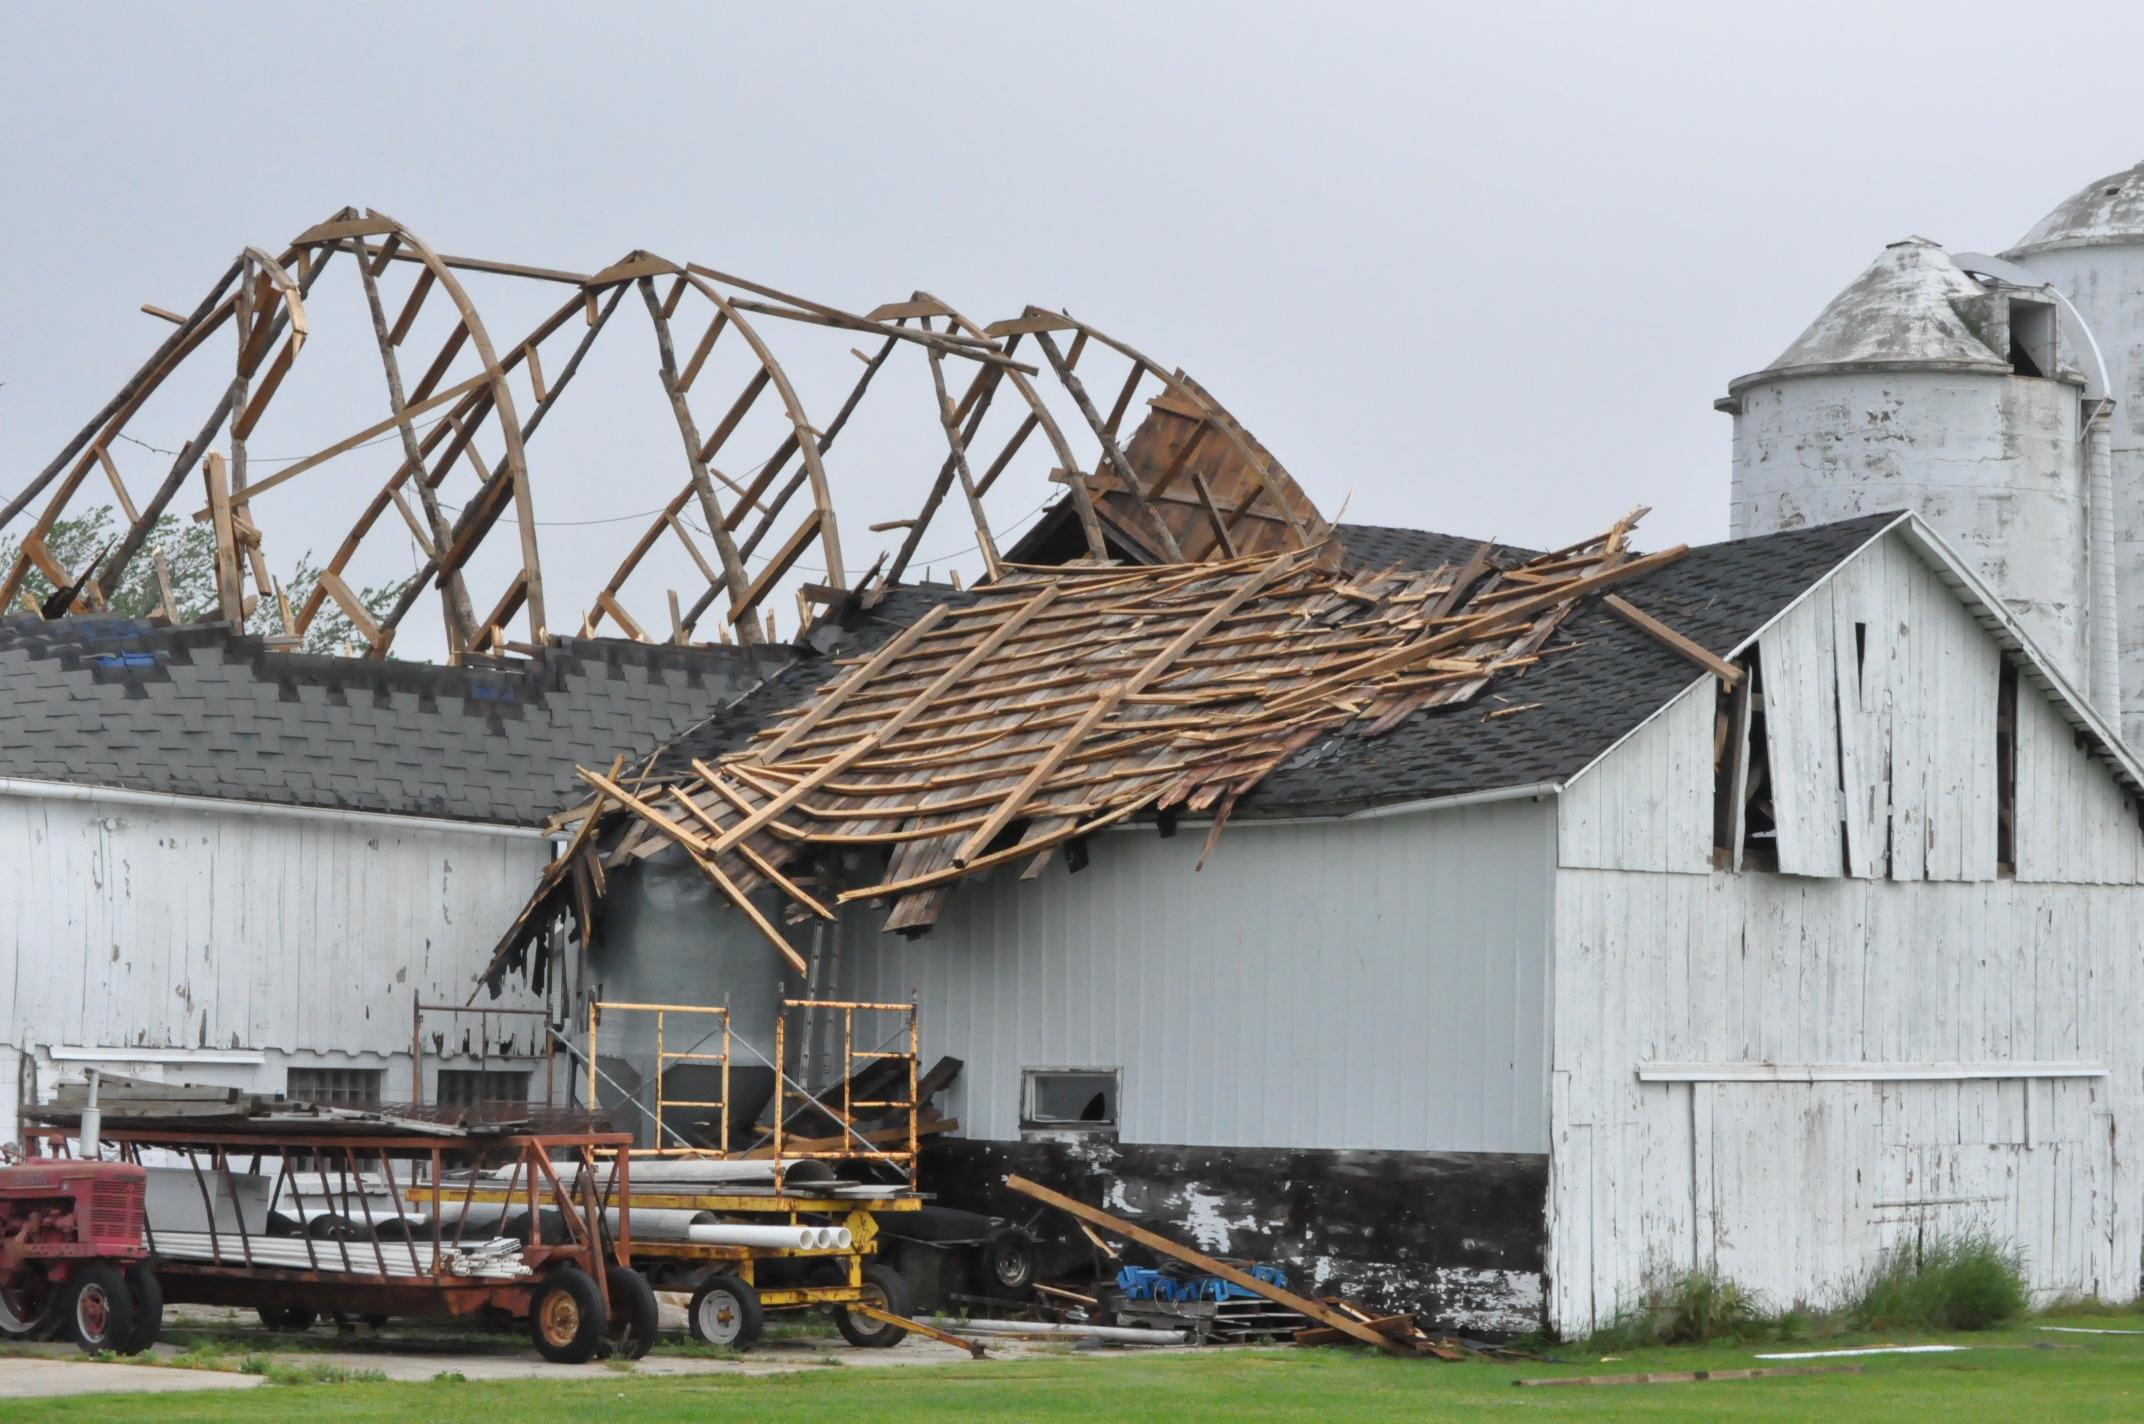 A barn in Angelica shows damage June 15, 2017, resulting from storms the previous night. (WLUK/Jake Swanson)